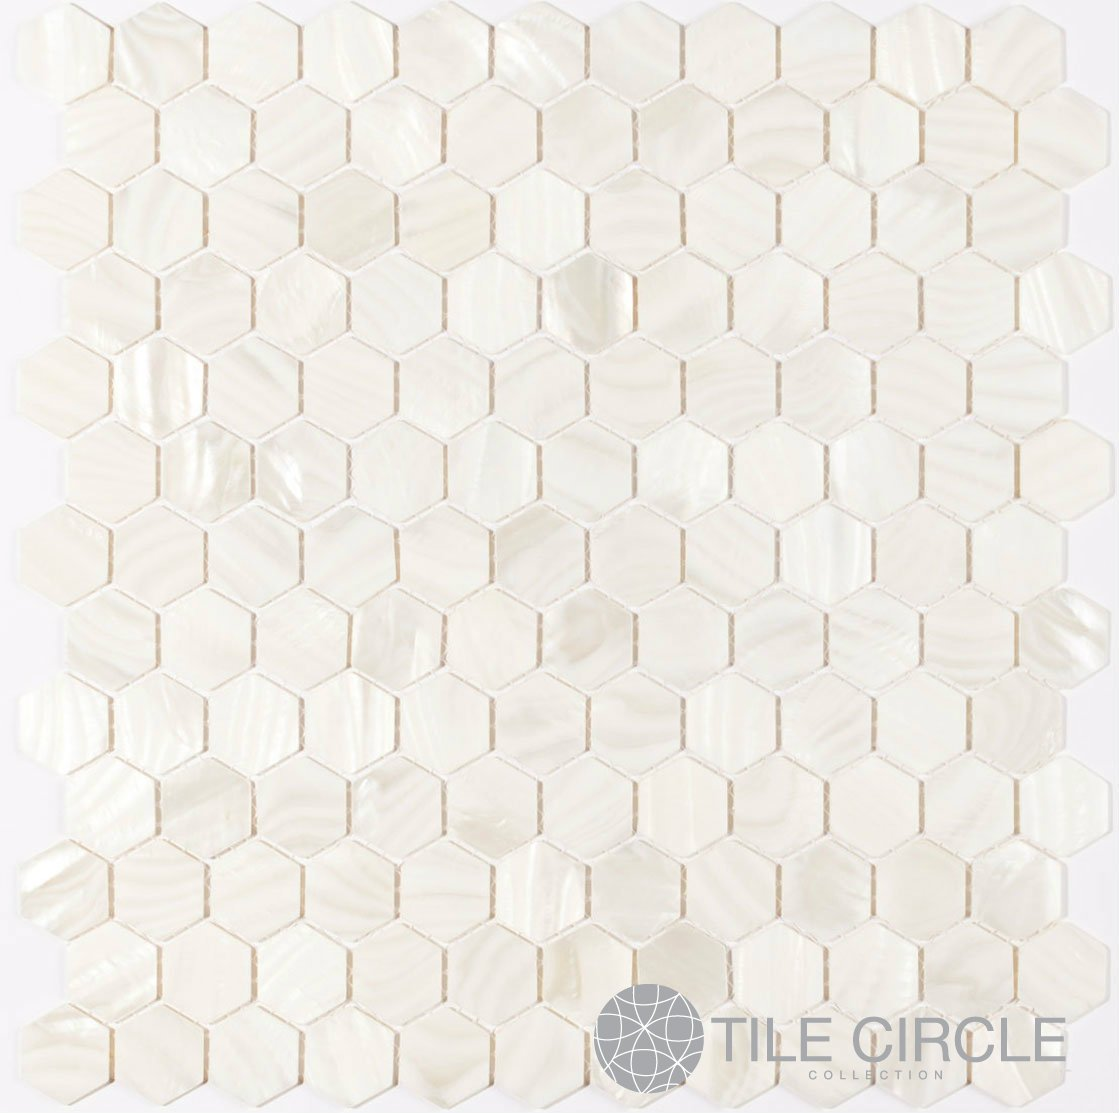 Genuine mother of pearl shell tile white 1 hexagons on a 12 x genuine mother of pearl shell tile white 1 hexagons on a 12 x 12 mesh for backsplash and bathroom walls and floors ceramic tiles amazon dailygadgetfo Images